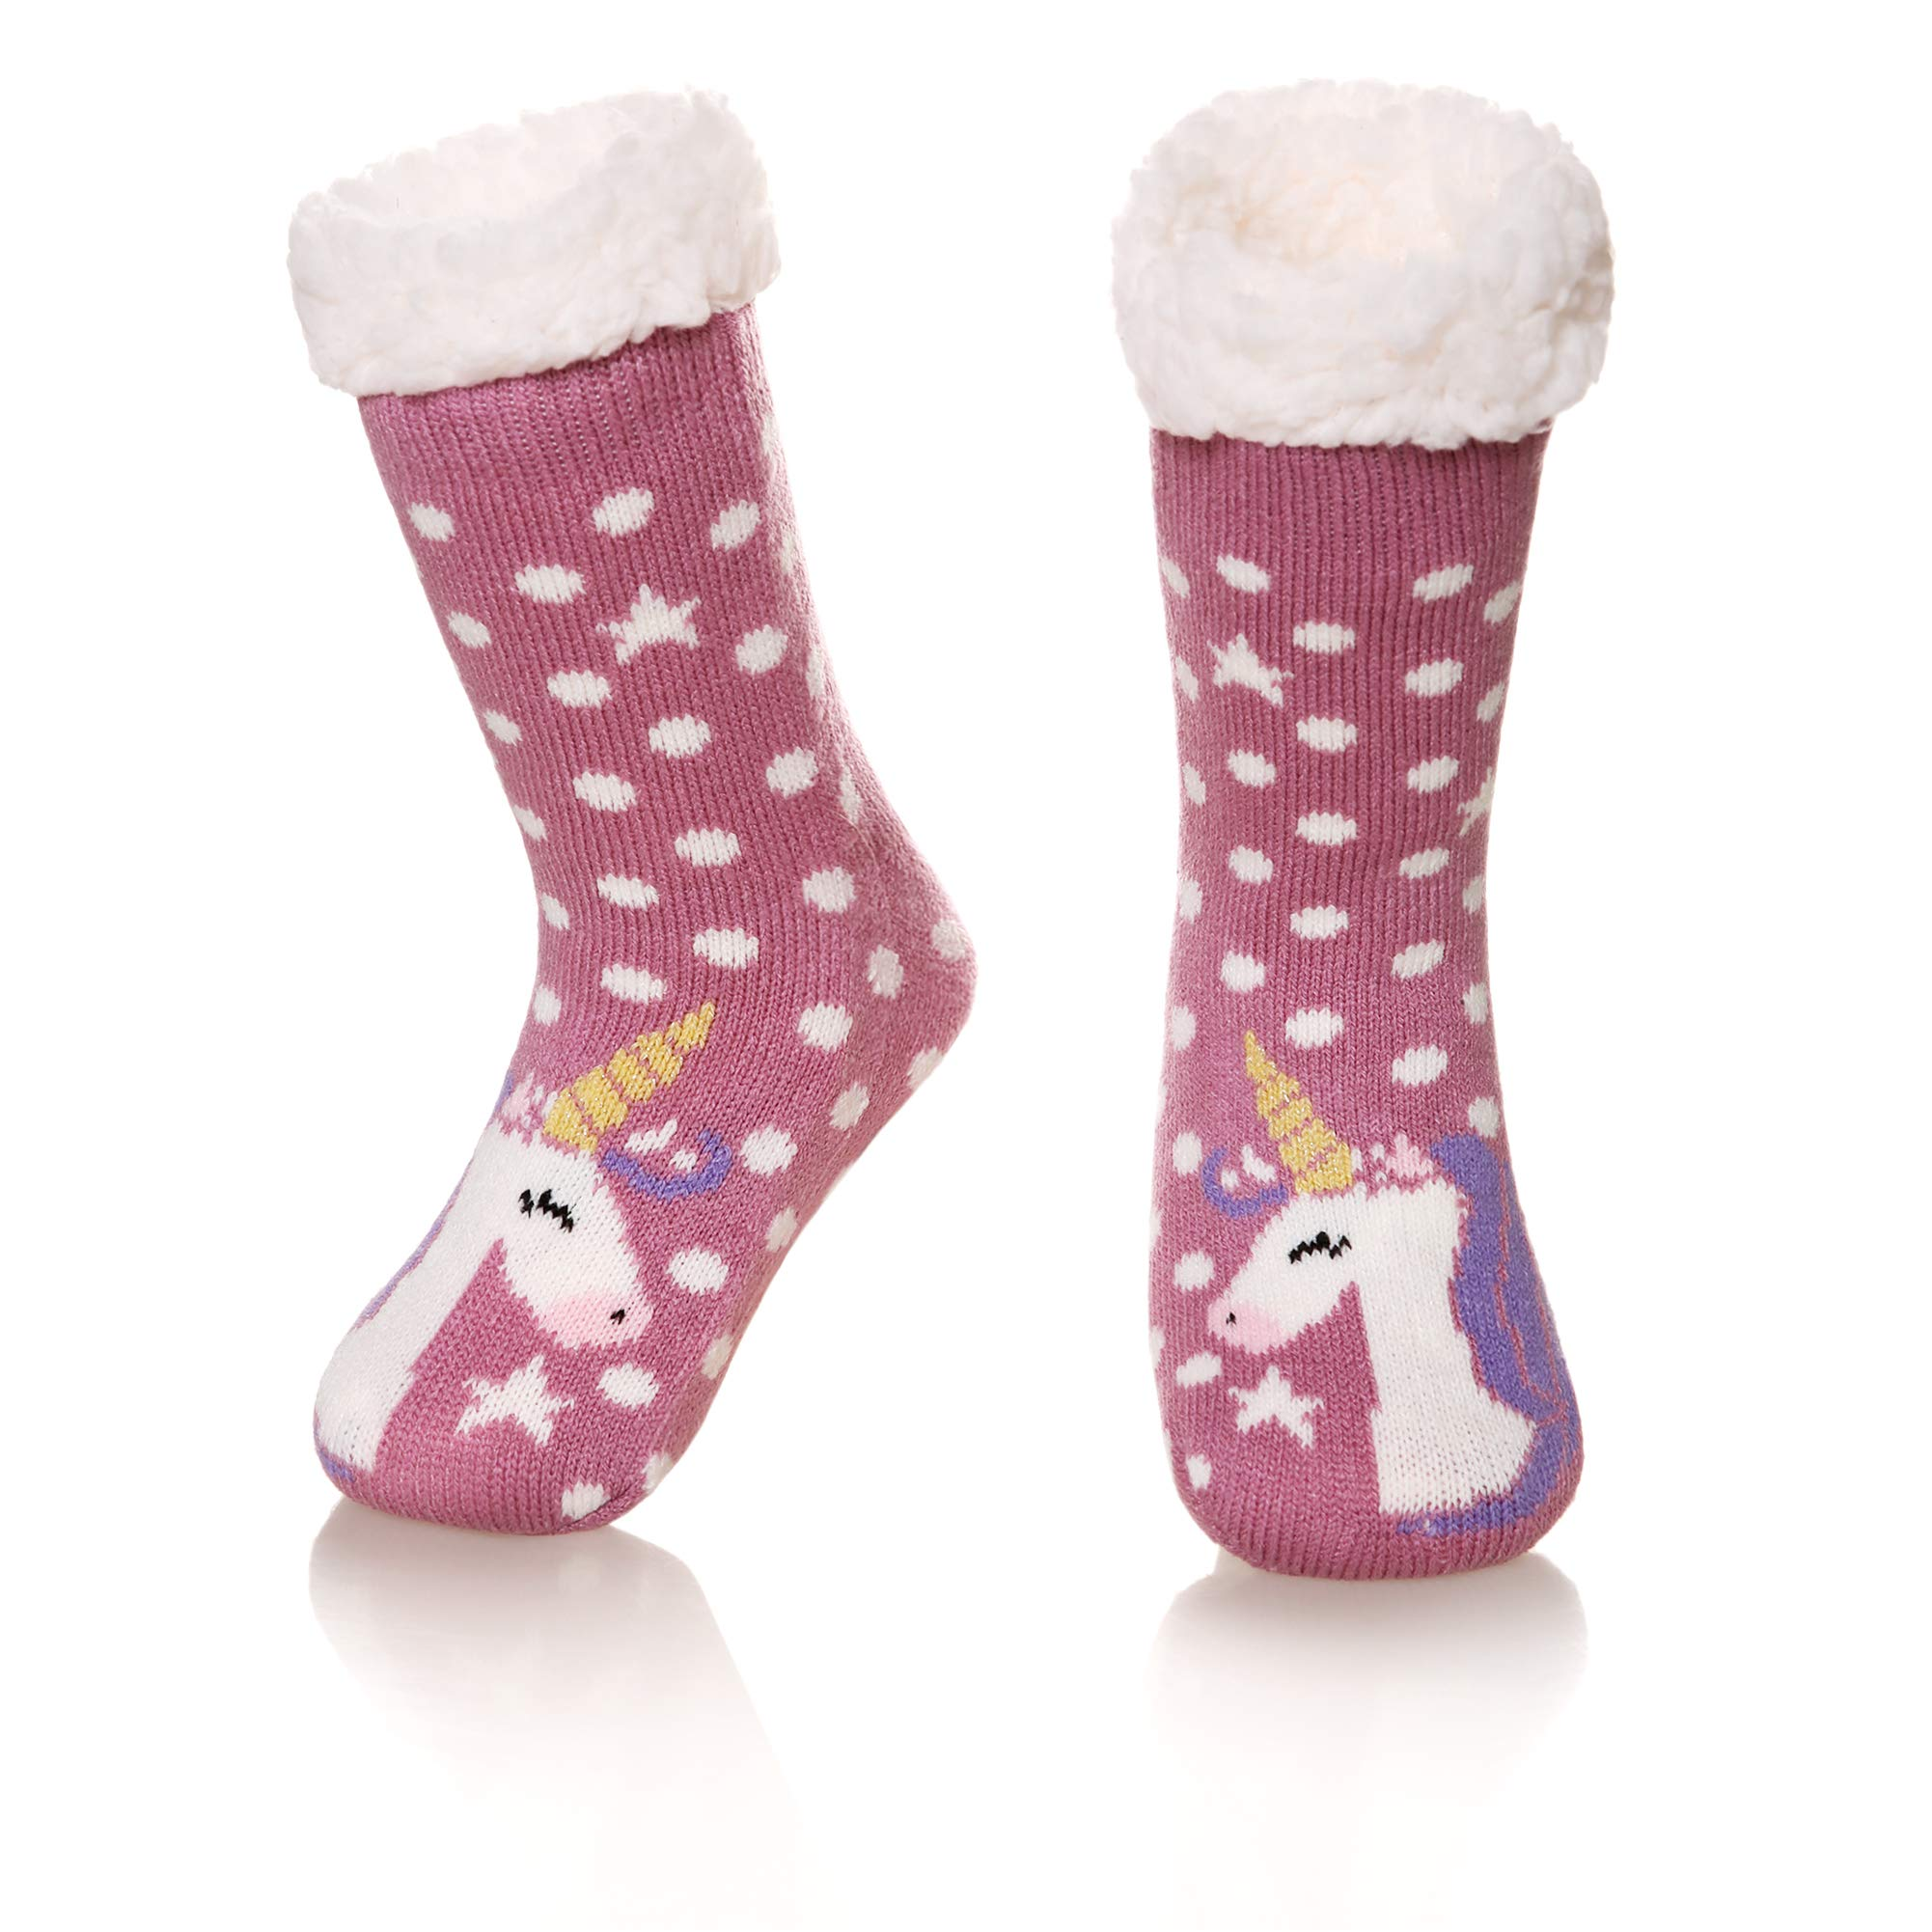 Kids Boys Girls Warm Slipper Socks Cute Animal Soft Thicken Winter Thermal Fleece Fuzzy Non-Skid Children Home Socks